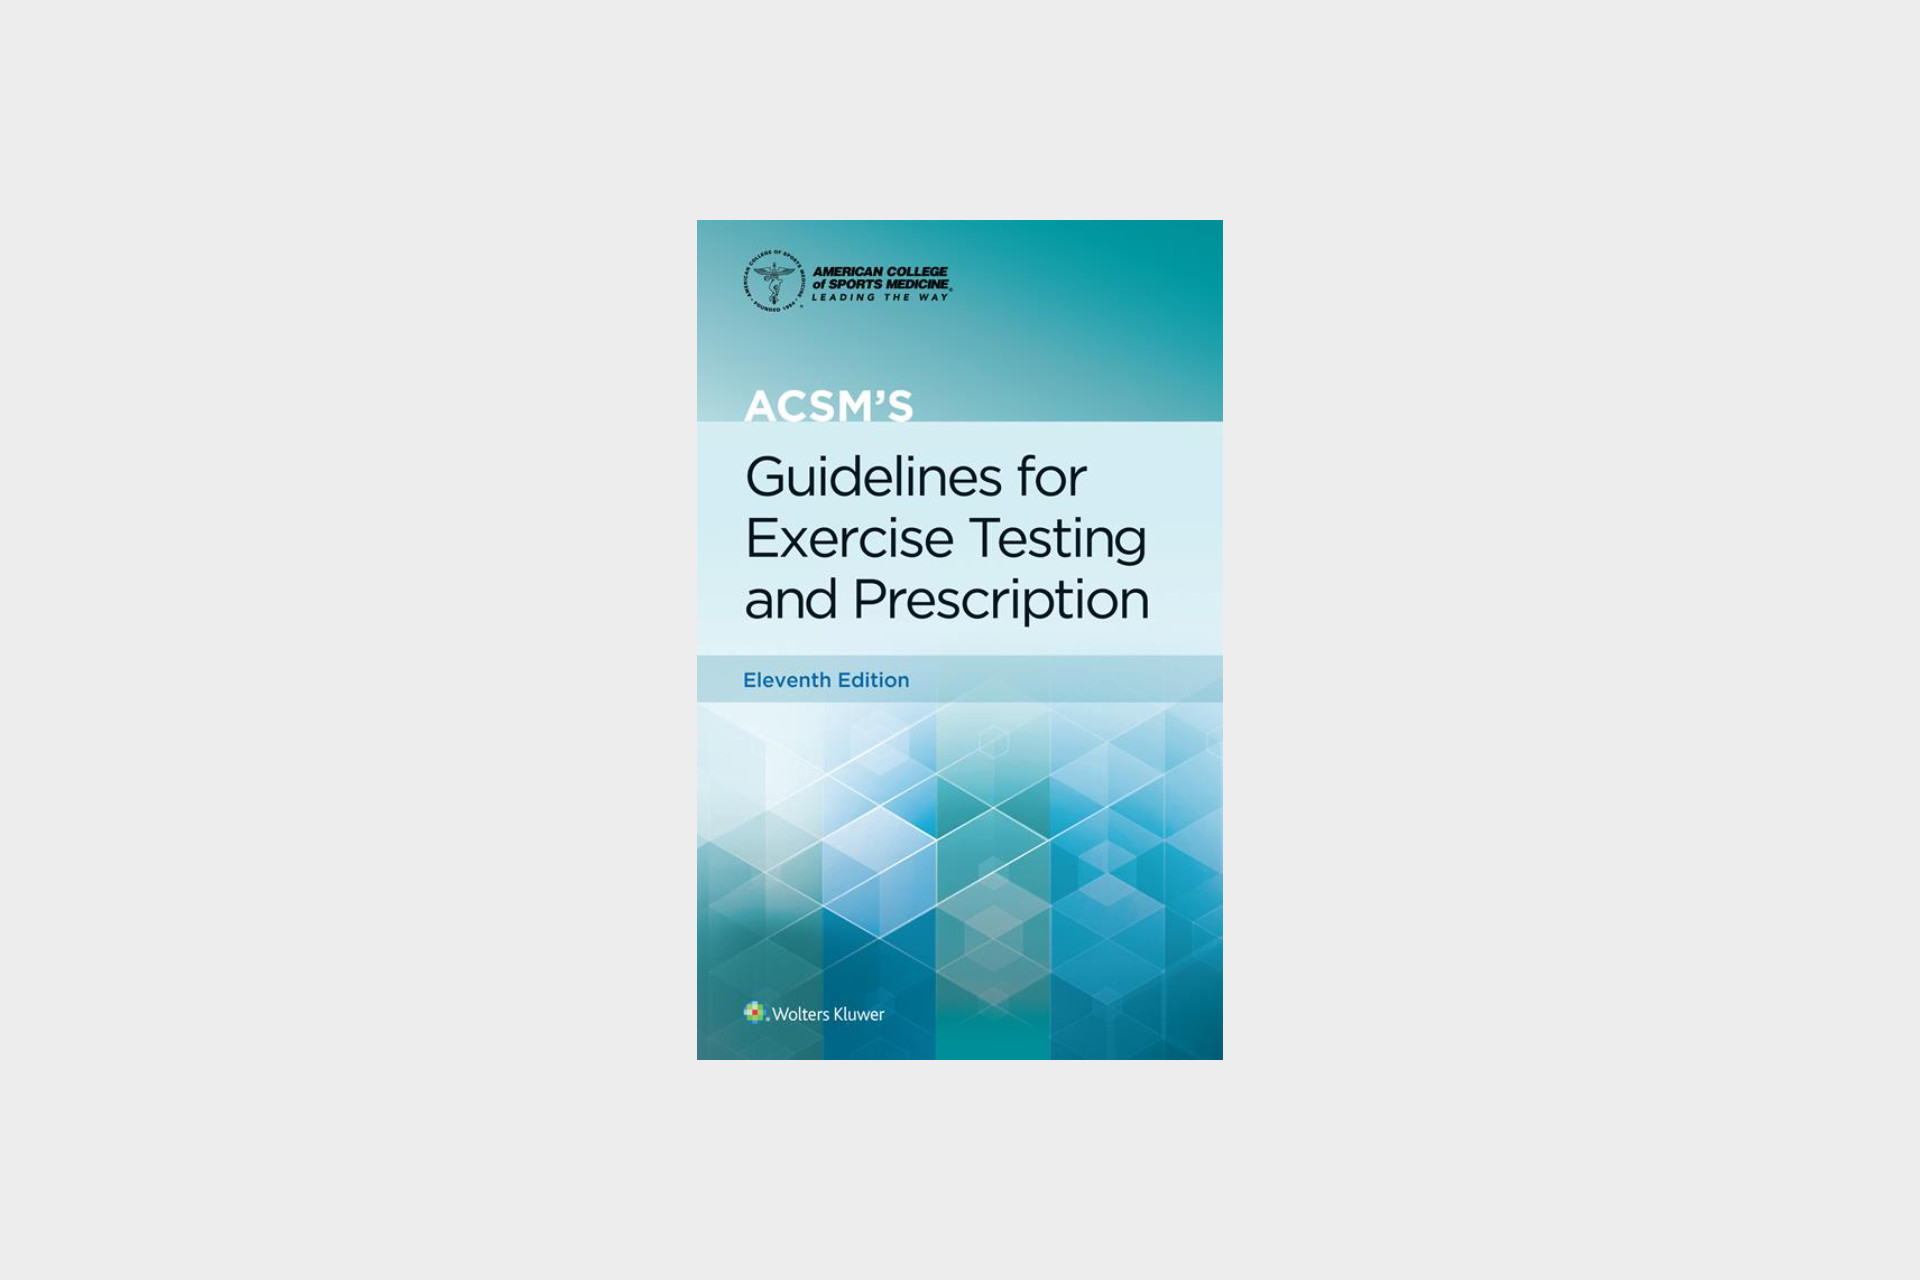 ACSM's Guidelines for Exercise Testing and Prescription book cover